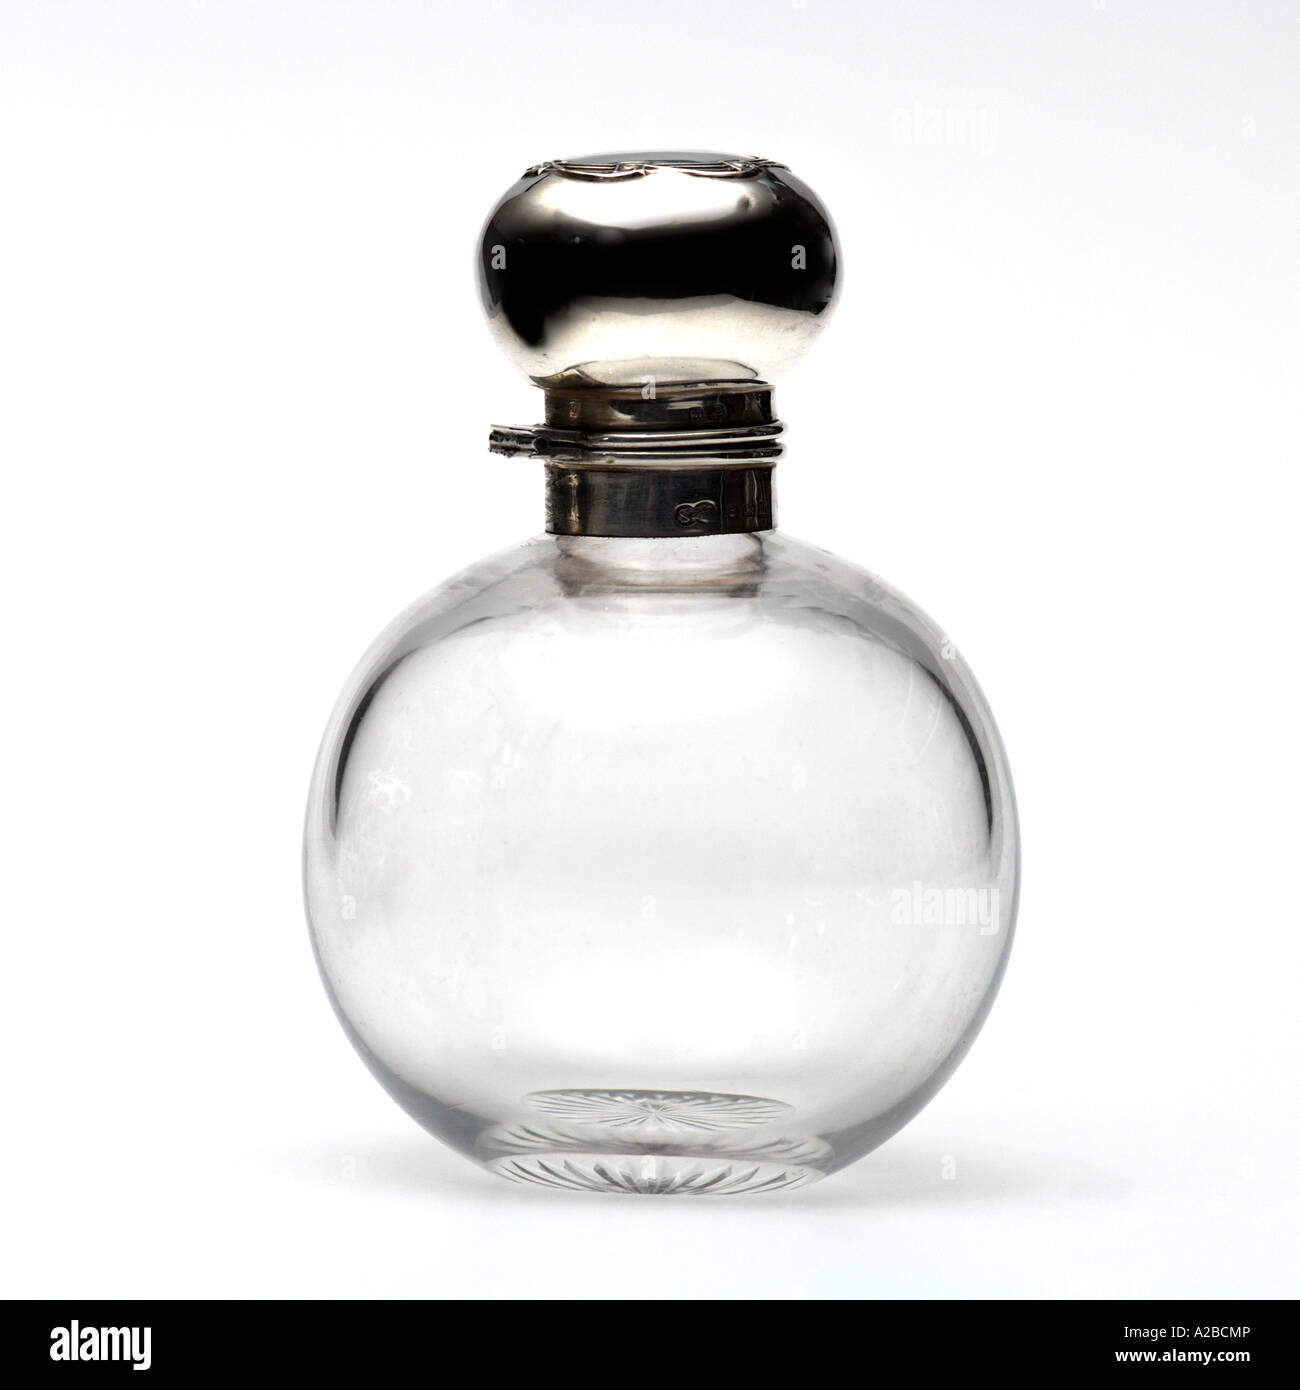 A Silver and Glass Perfume Bottle early 1900s - Stock Image